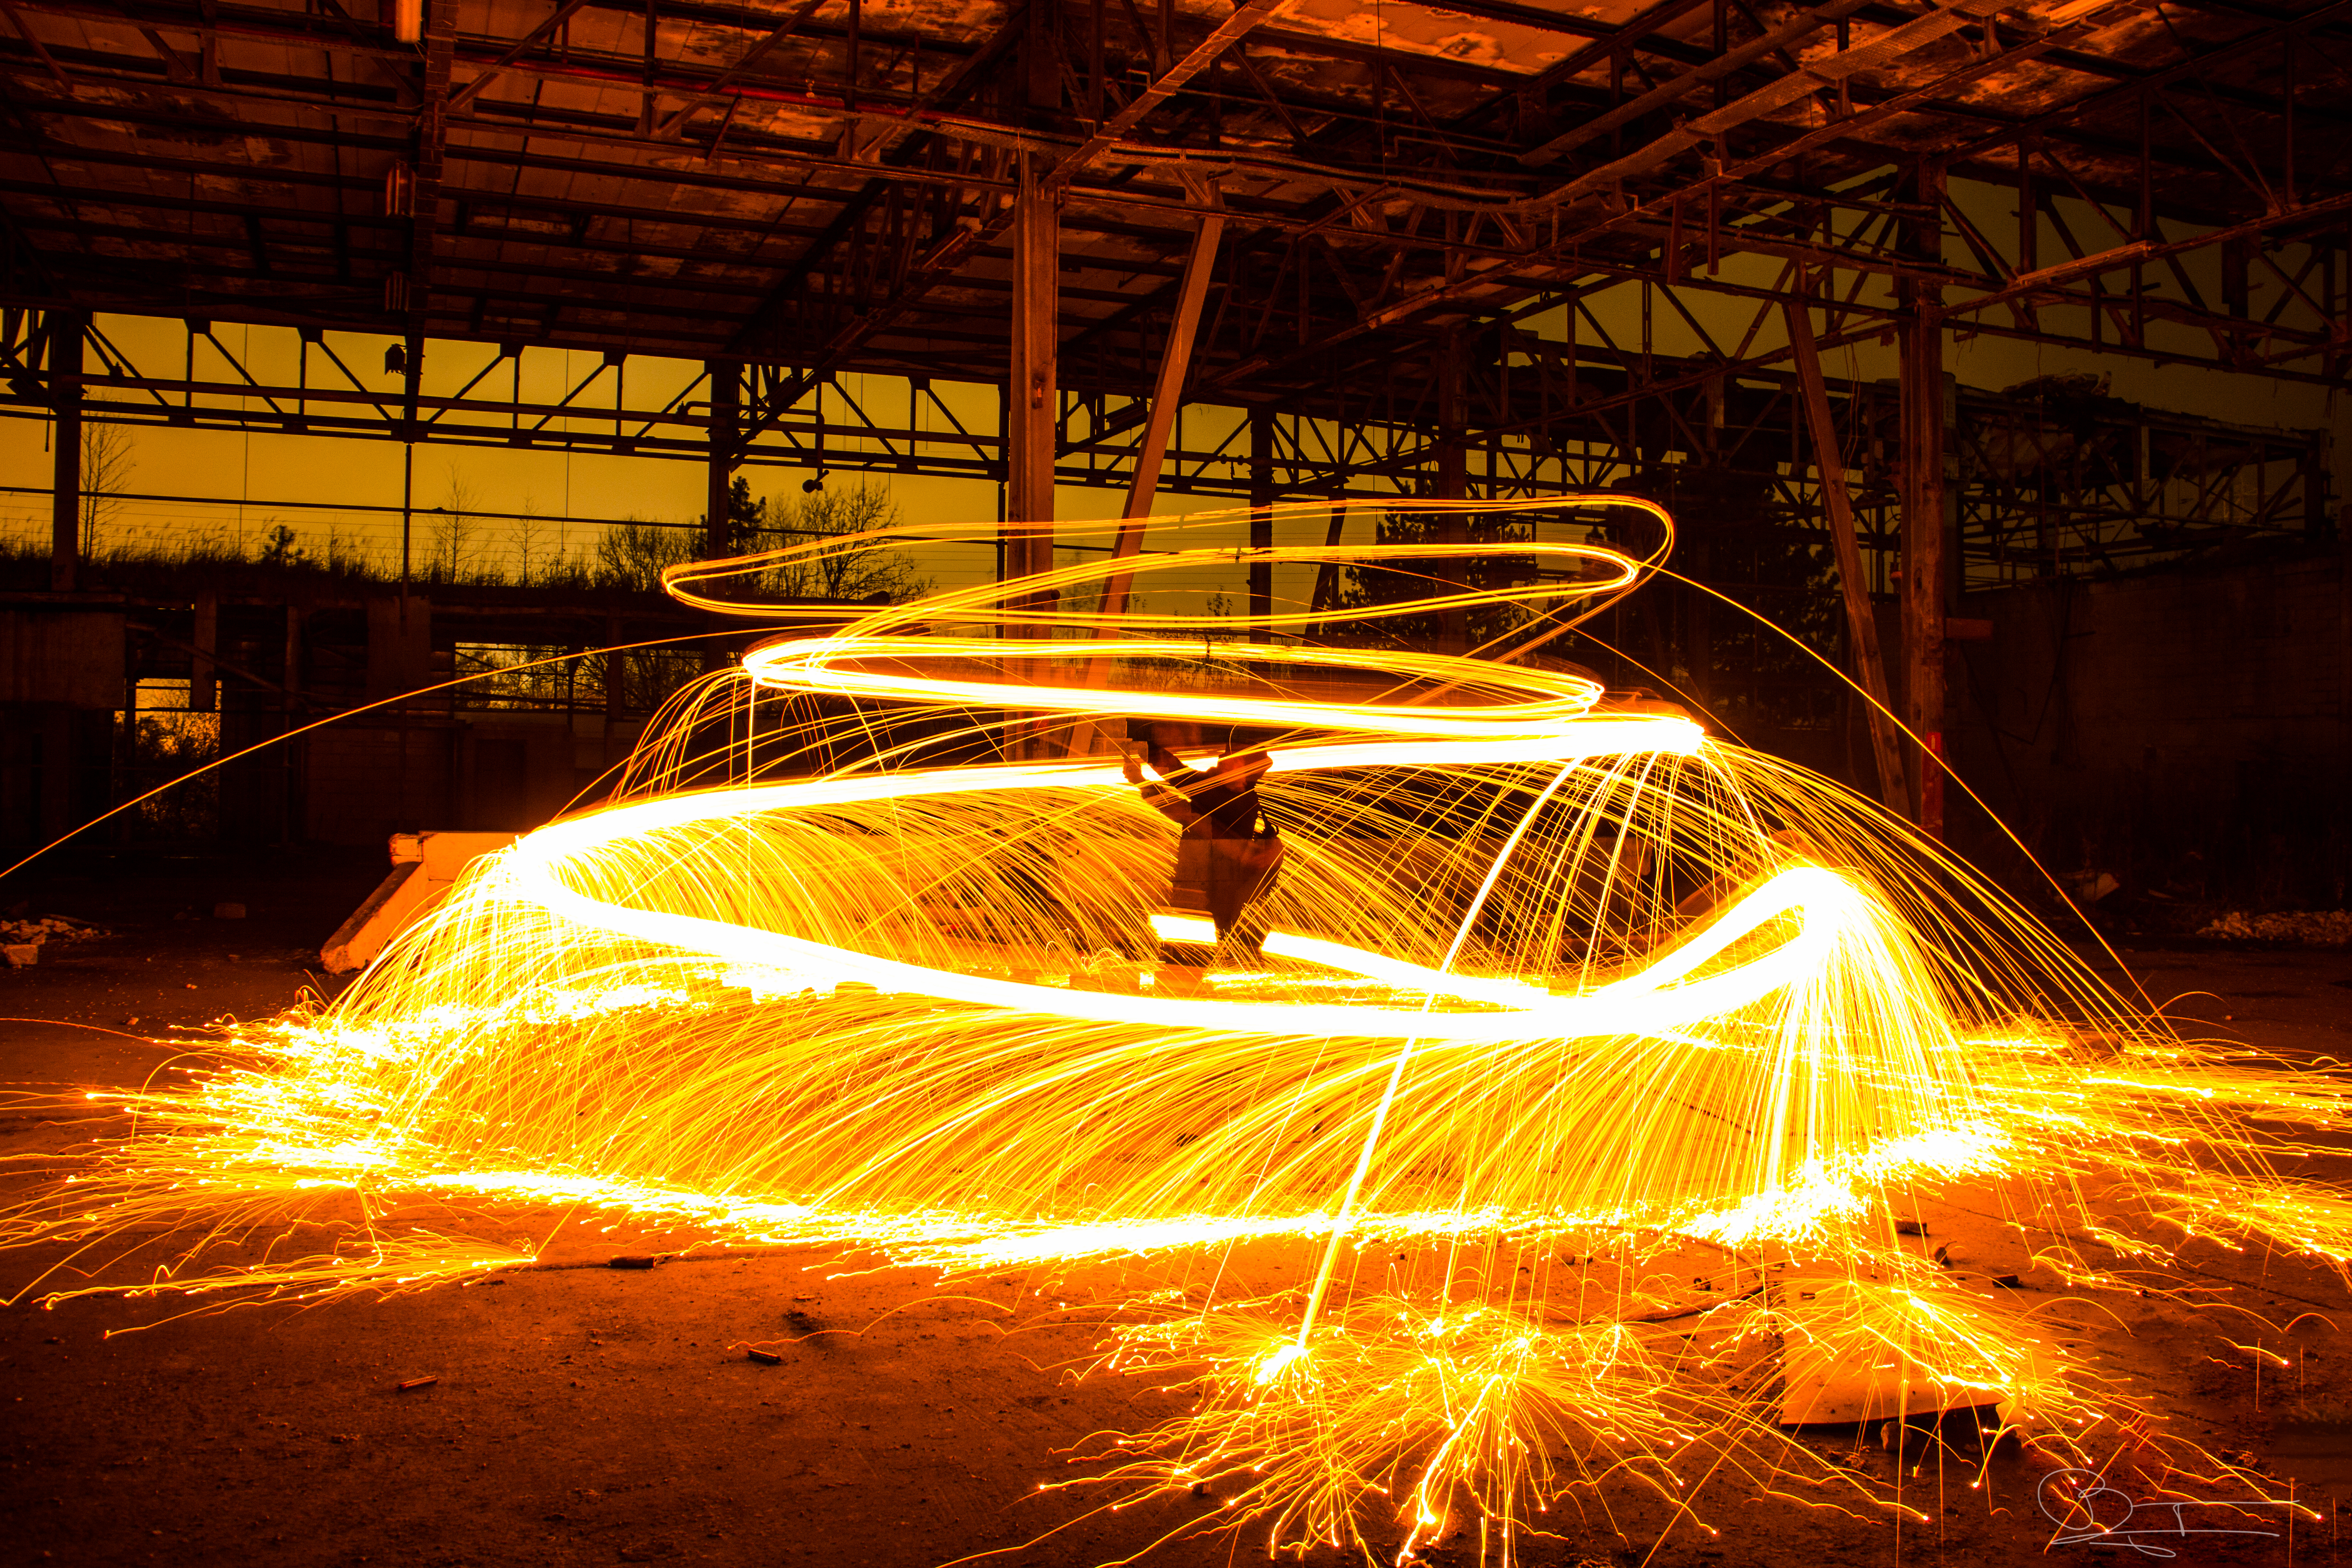 Sparks in Factory